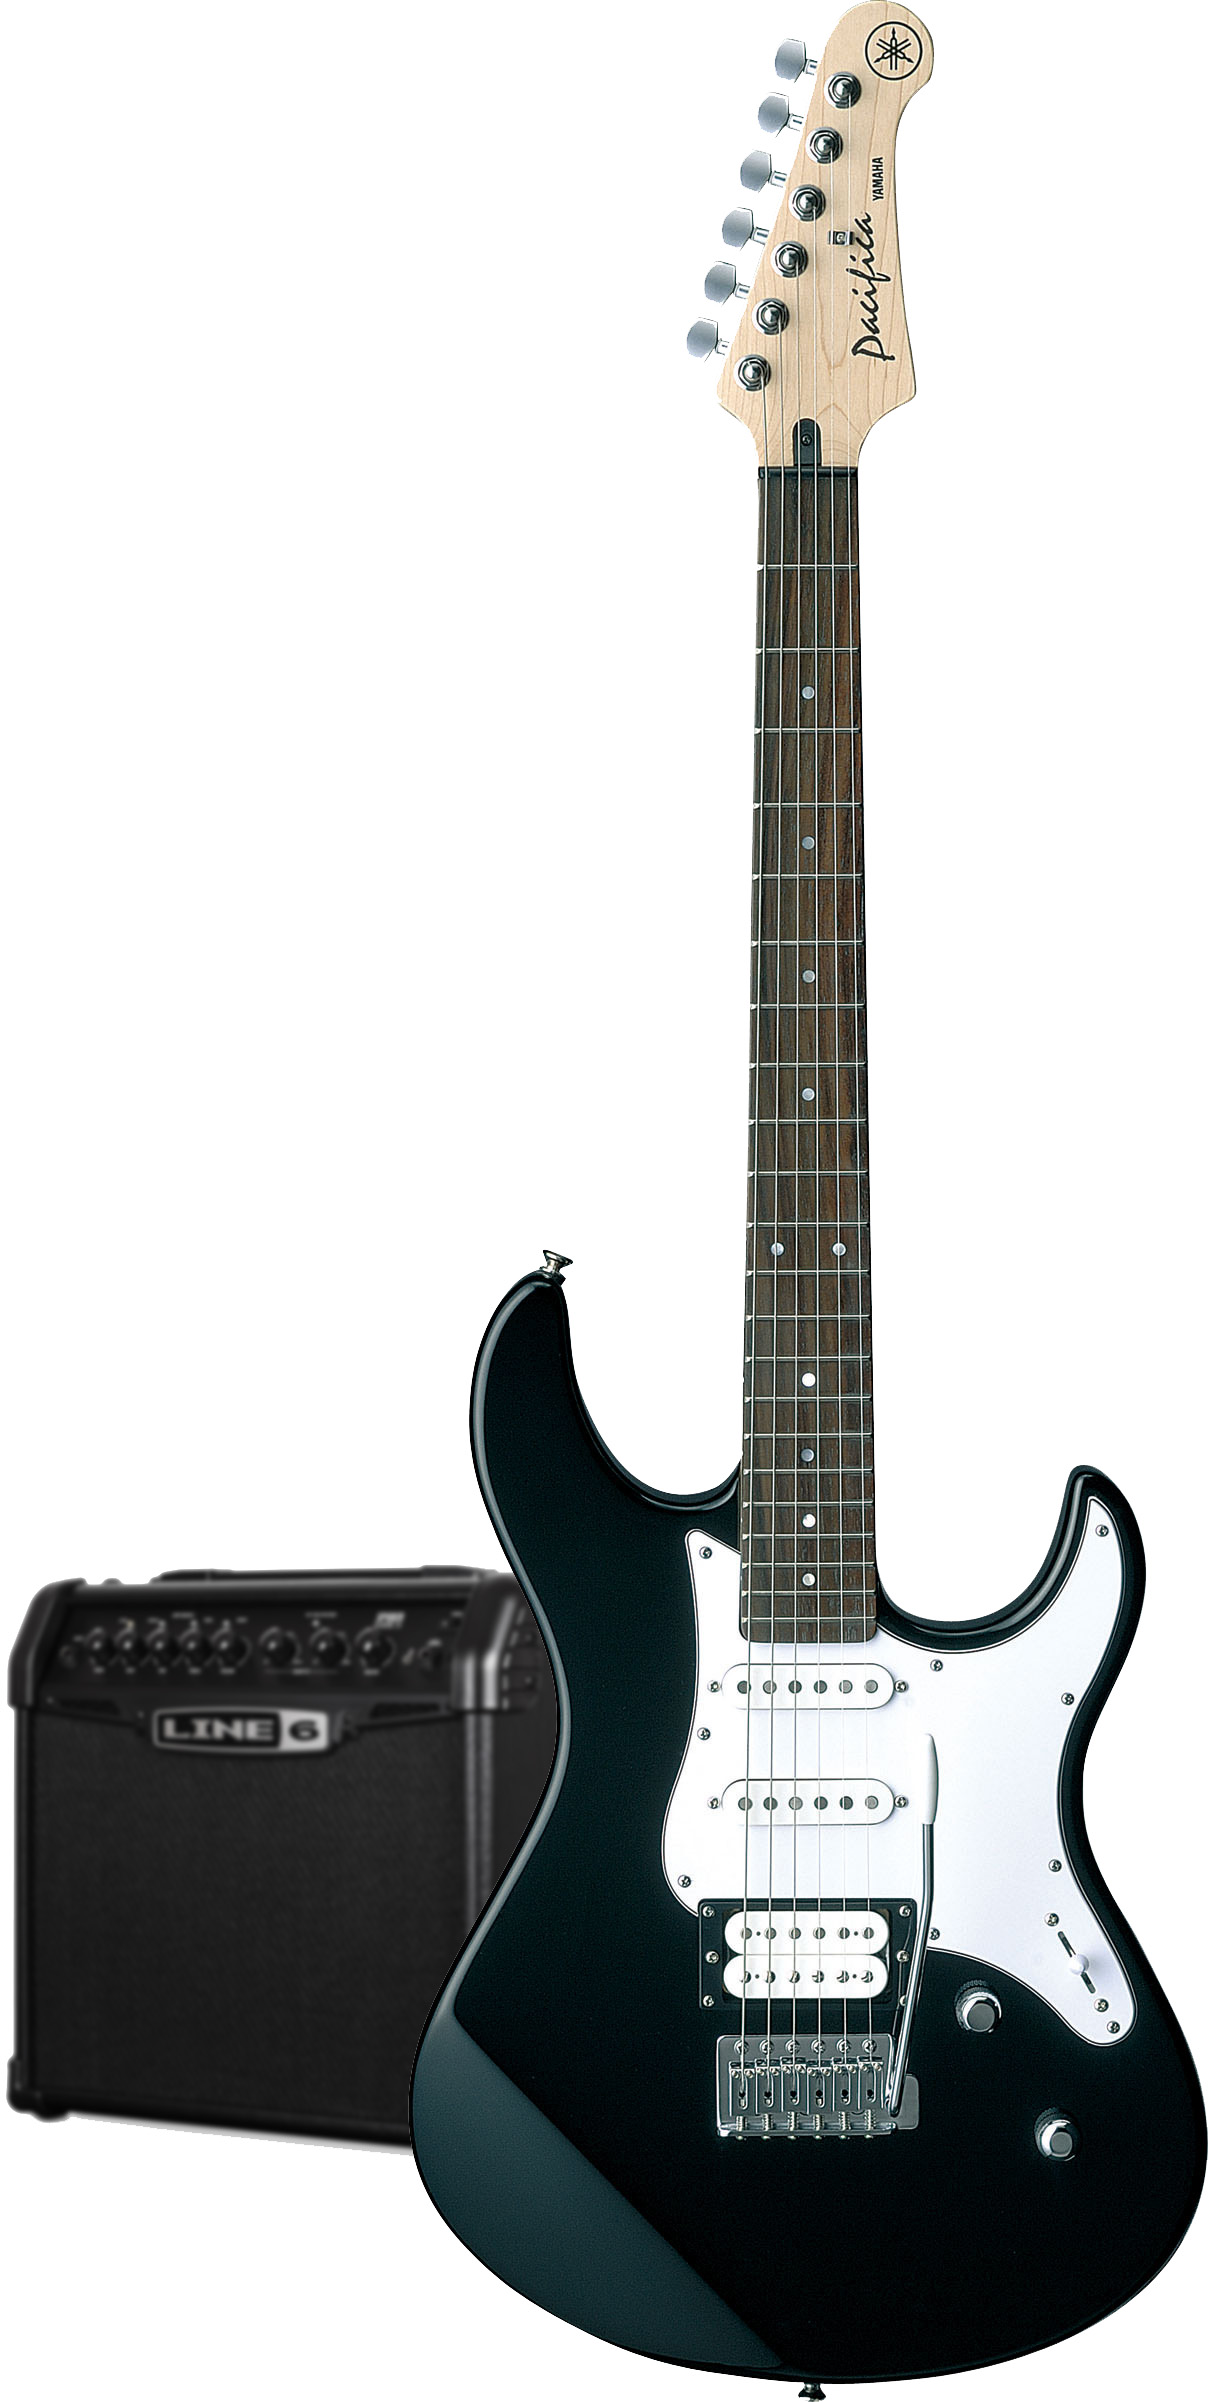 yamaha pacifica 112v electric guitar spider classic amp pack in black finish yamaha music london. Black Bedroom Furniture Sets. Home Design Ideas